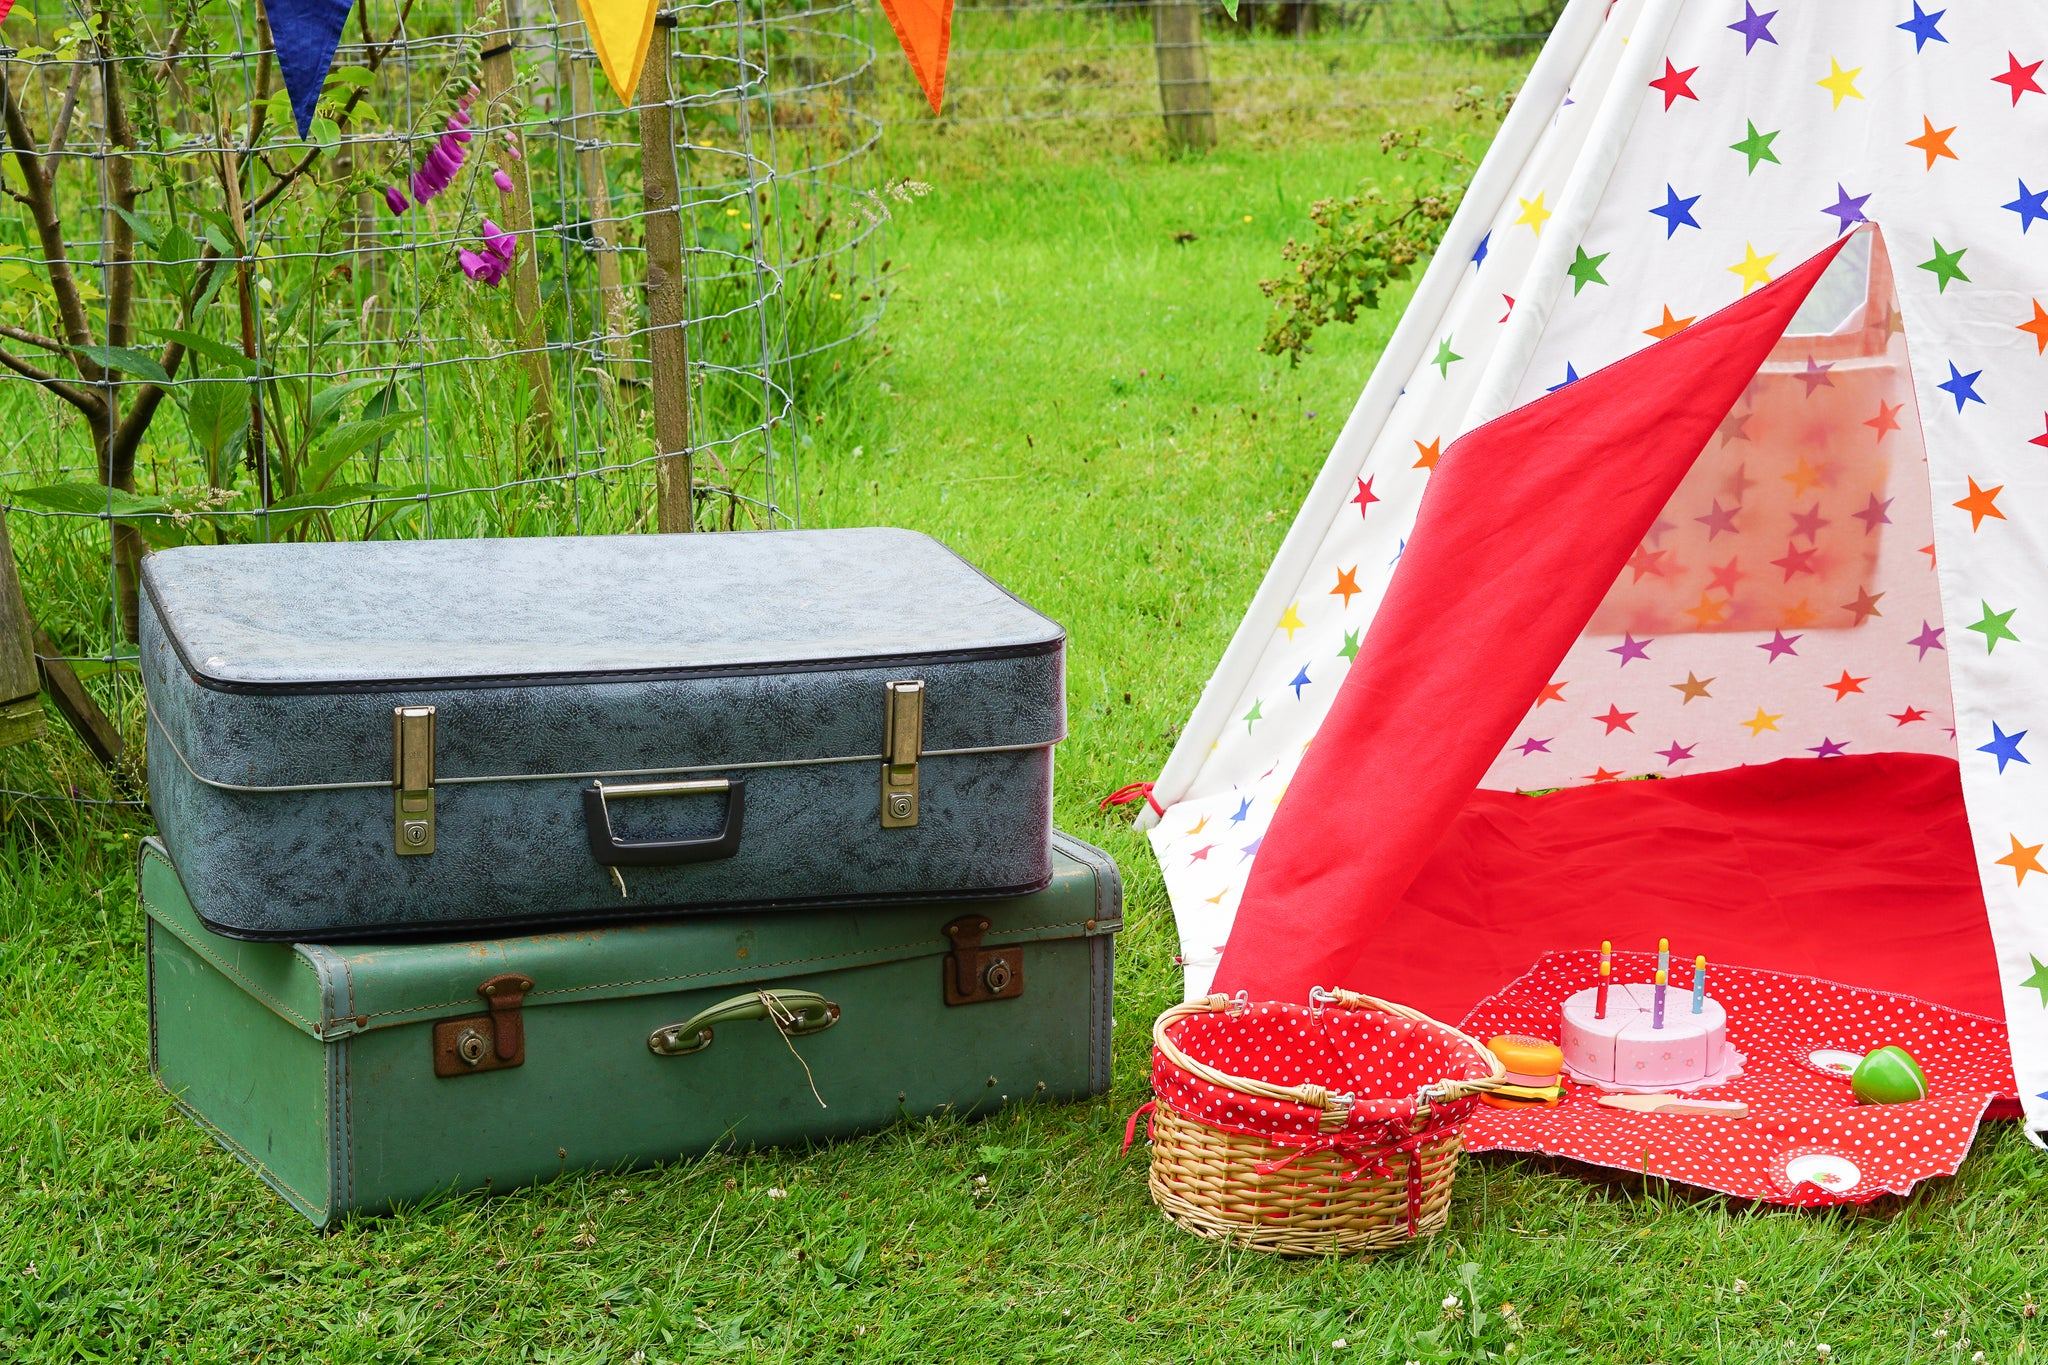 PACK YOUR SUITCASE FOR A GARDEN STAYCATION